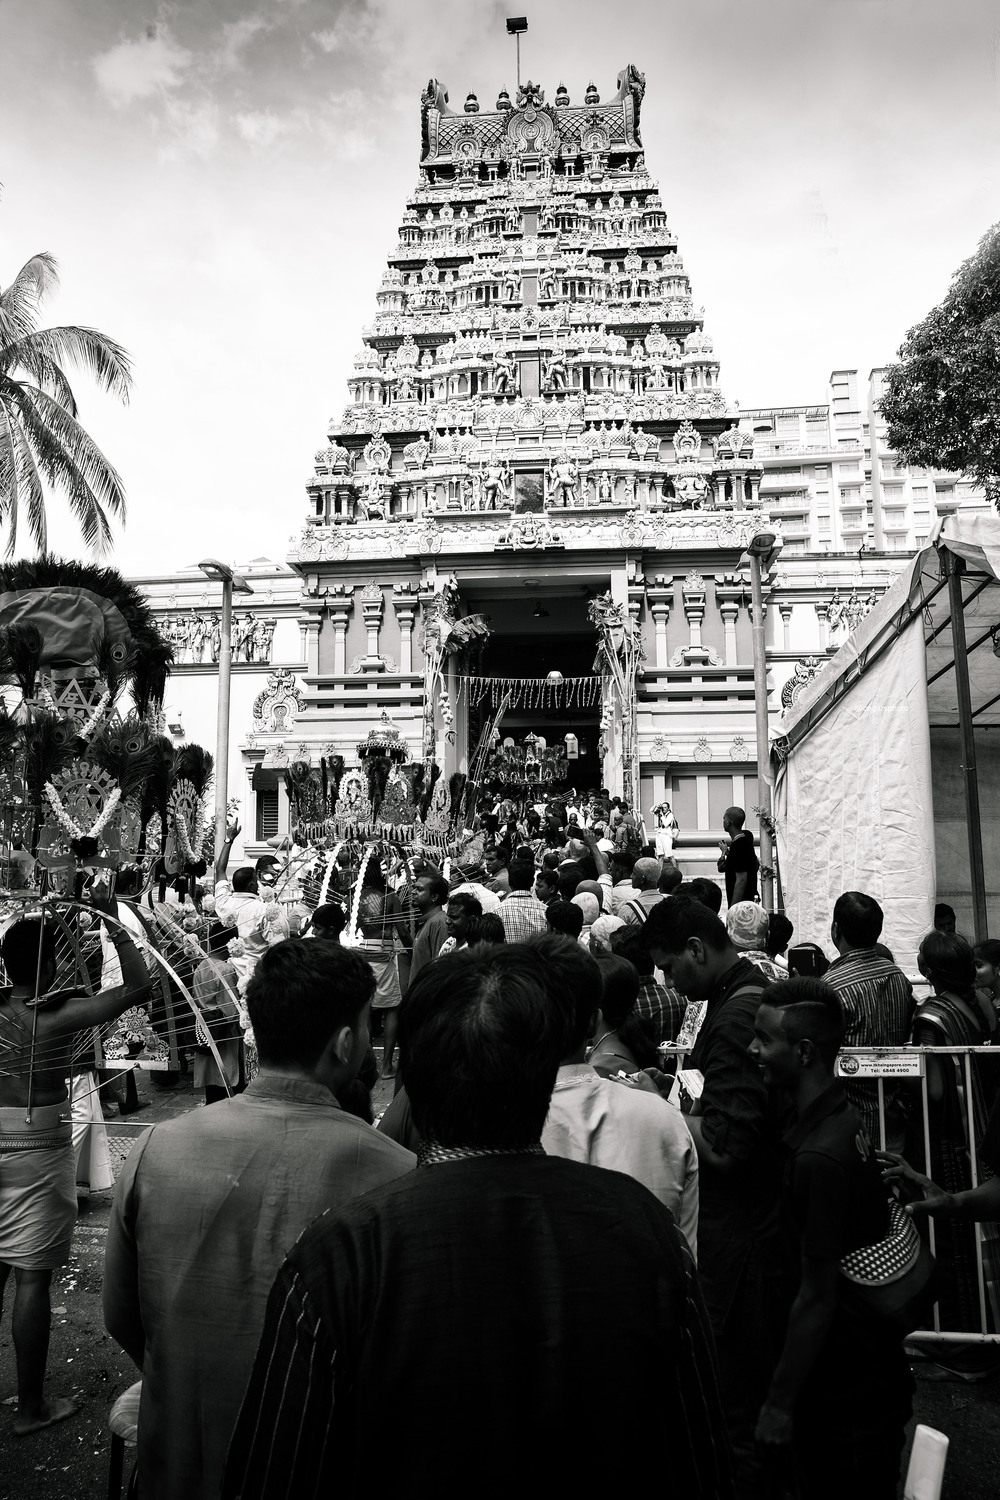 The destination of the pilgrimage where those who have carried  kavadi  are ultimately blessed. It is only a short walk from here to a small area where the devotees will be finally divested of their burdens.